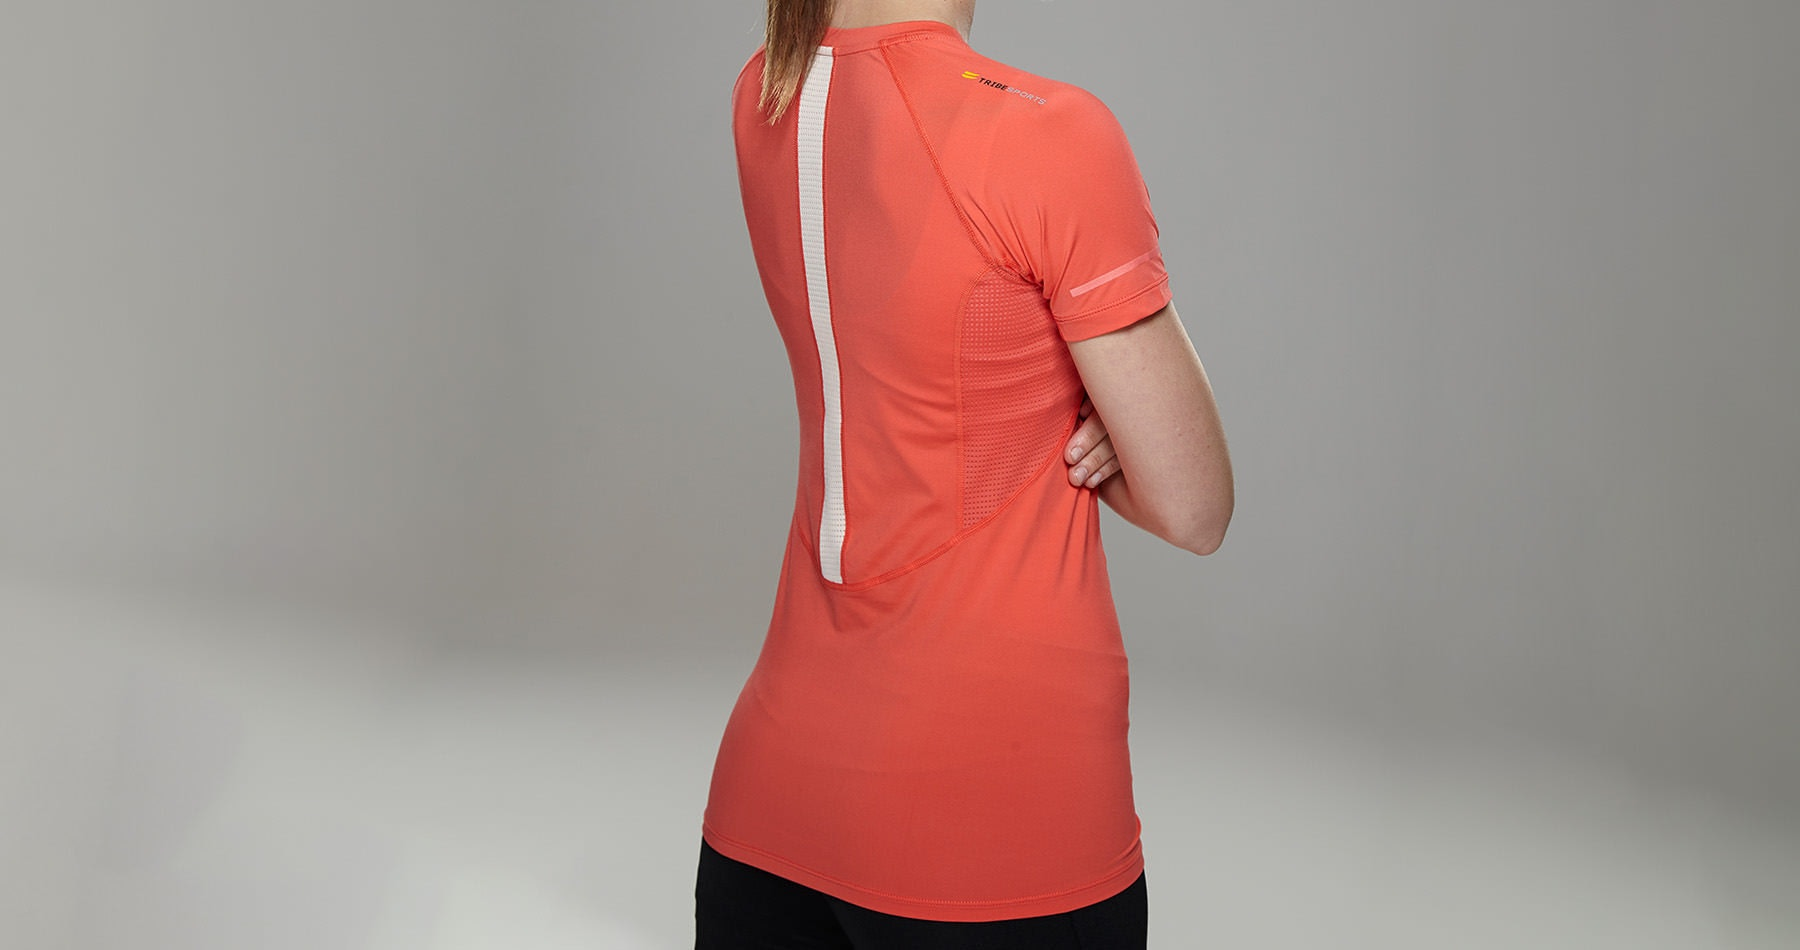 Tribesports Core Women's Short Sleeve Top Coral 3